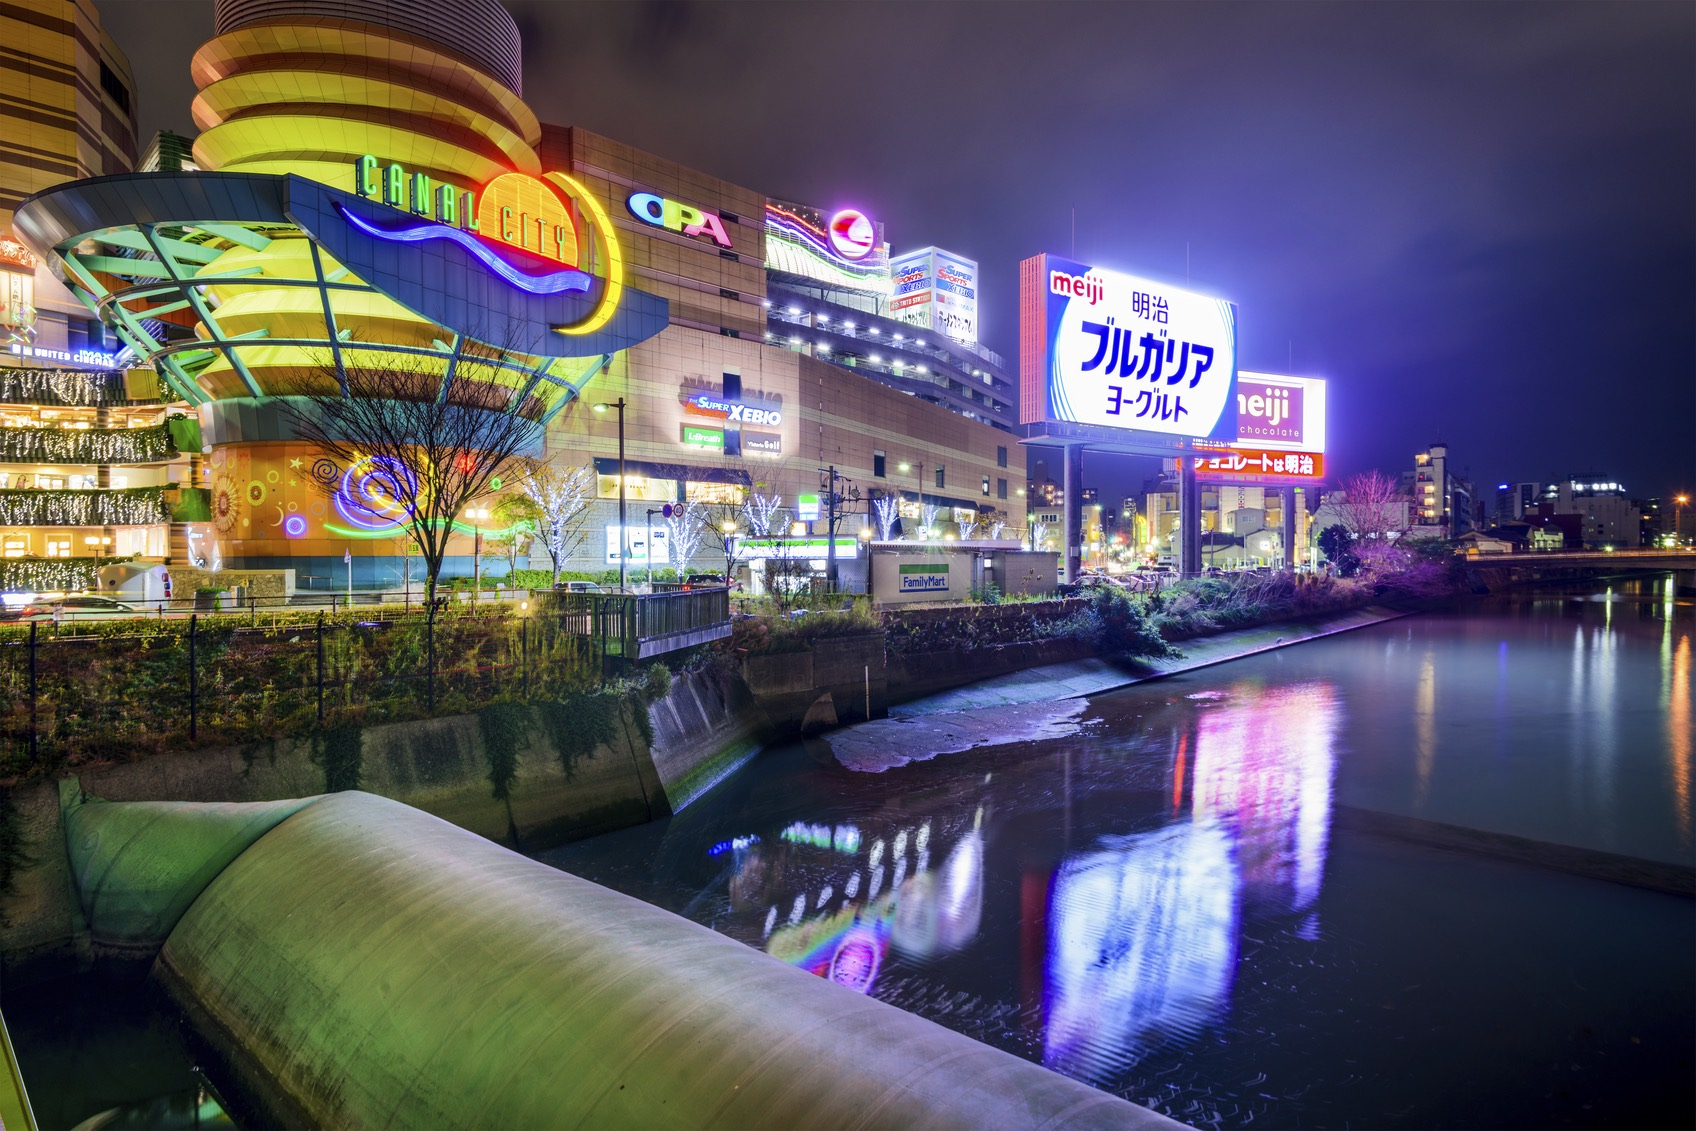 Canal City in Fukuoka, Japan